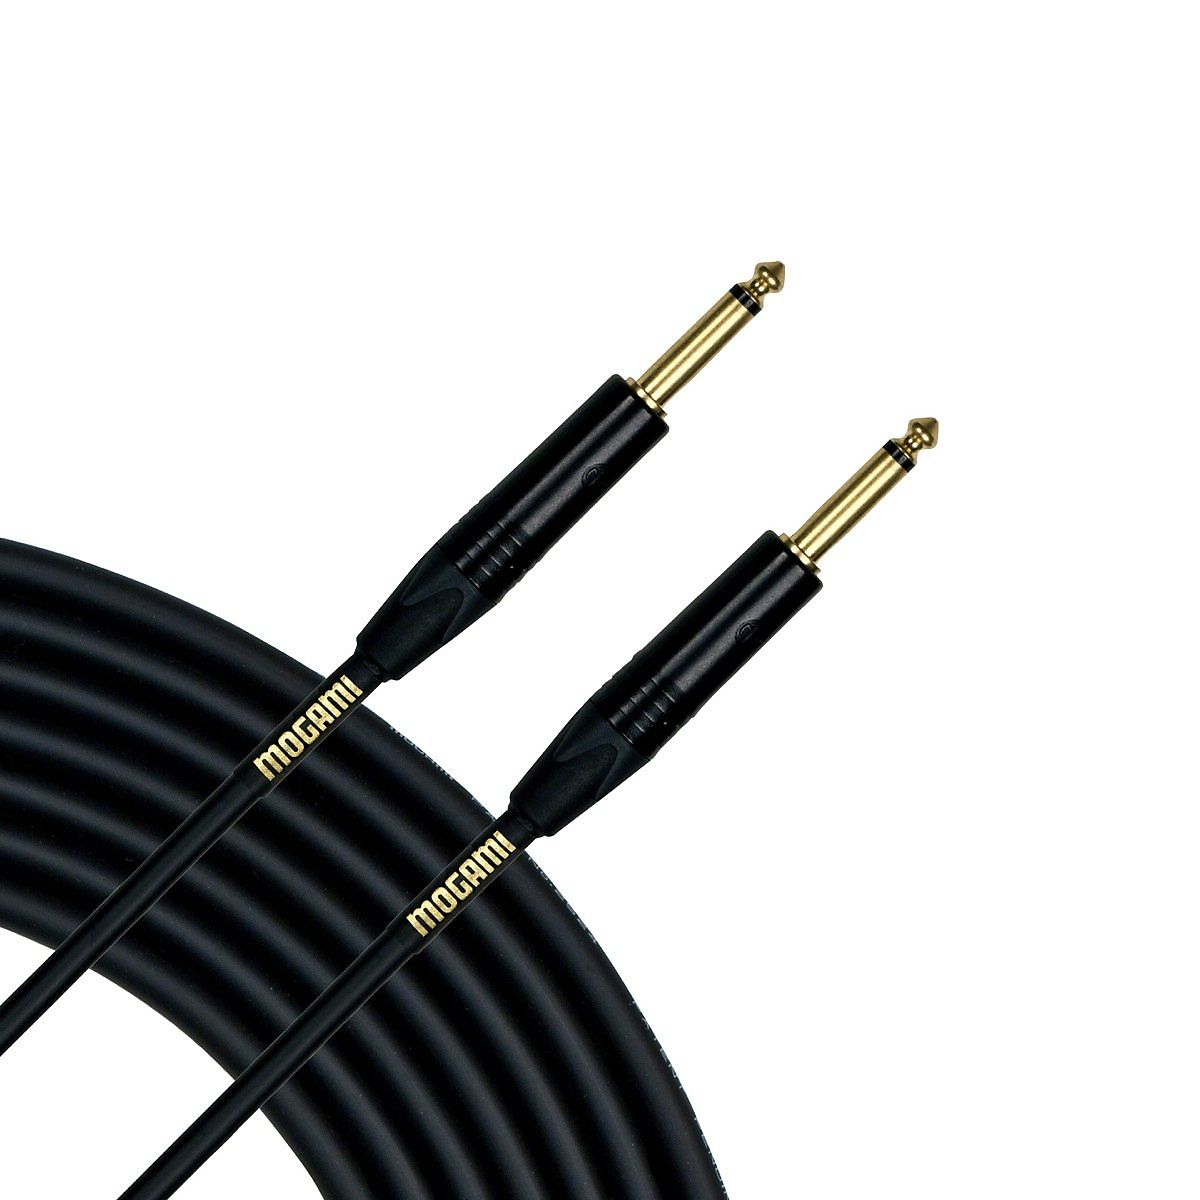 Mogami Gold Guitar/Instrument Cable, 18 Foot